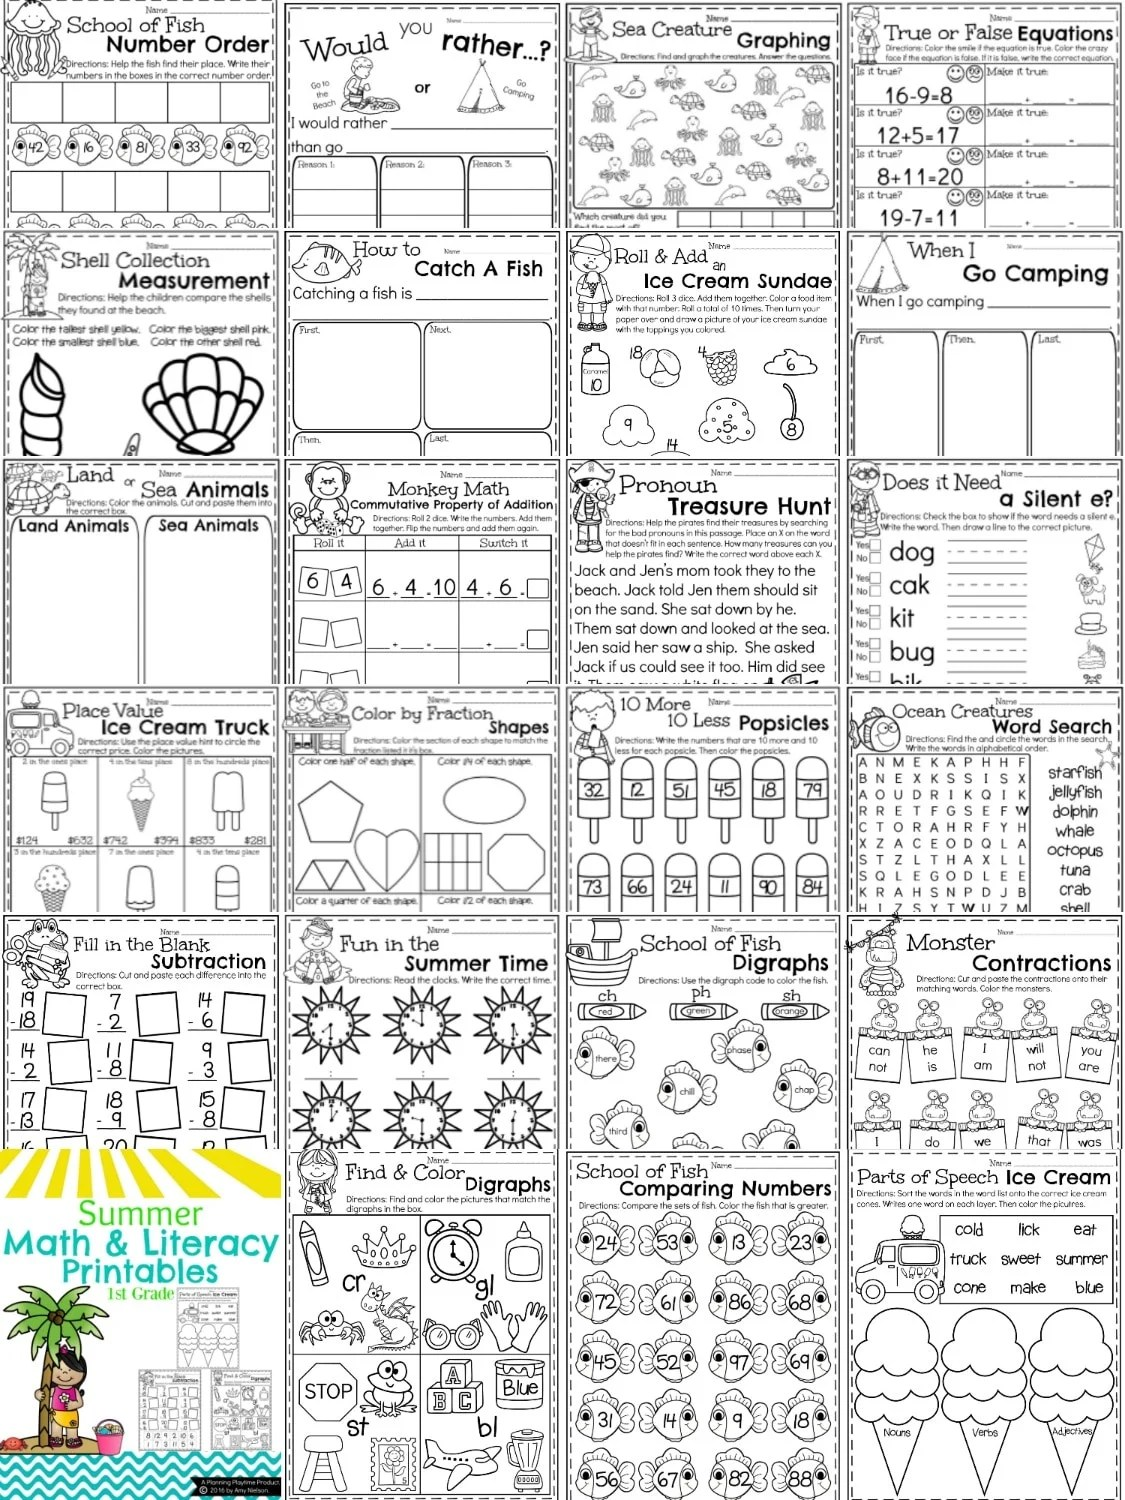 Printables Of Summer Fun Worksheets 1st Grade